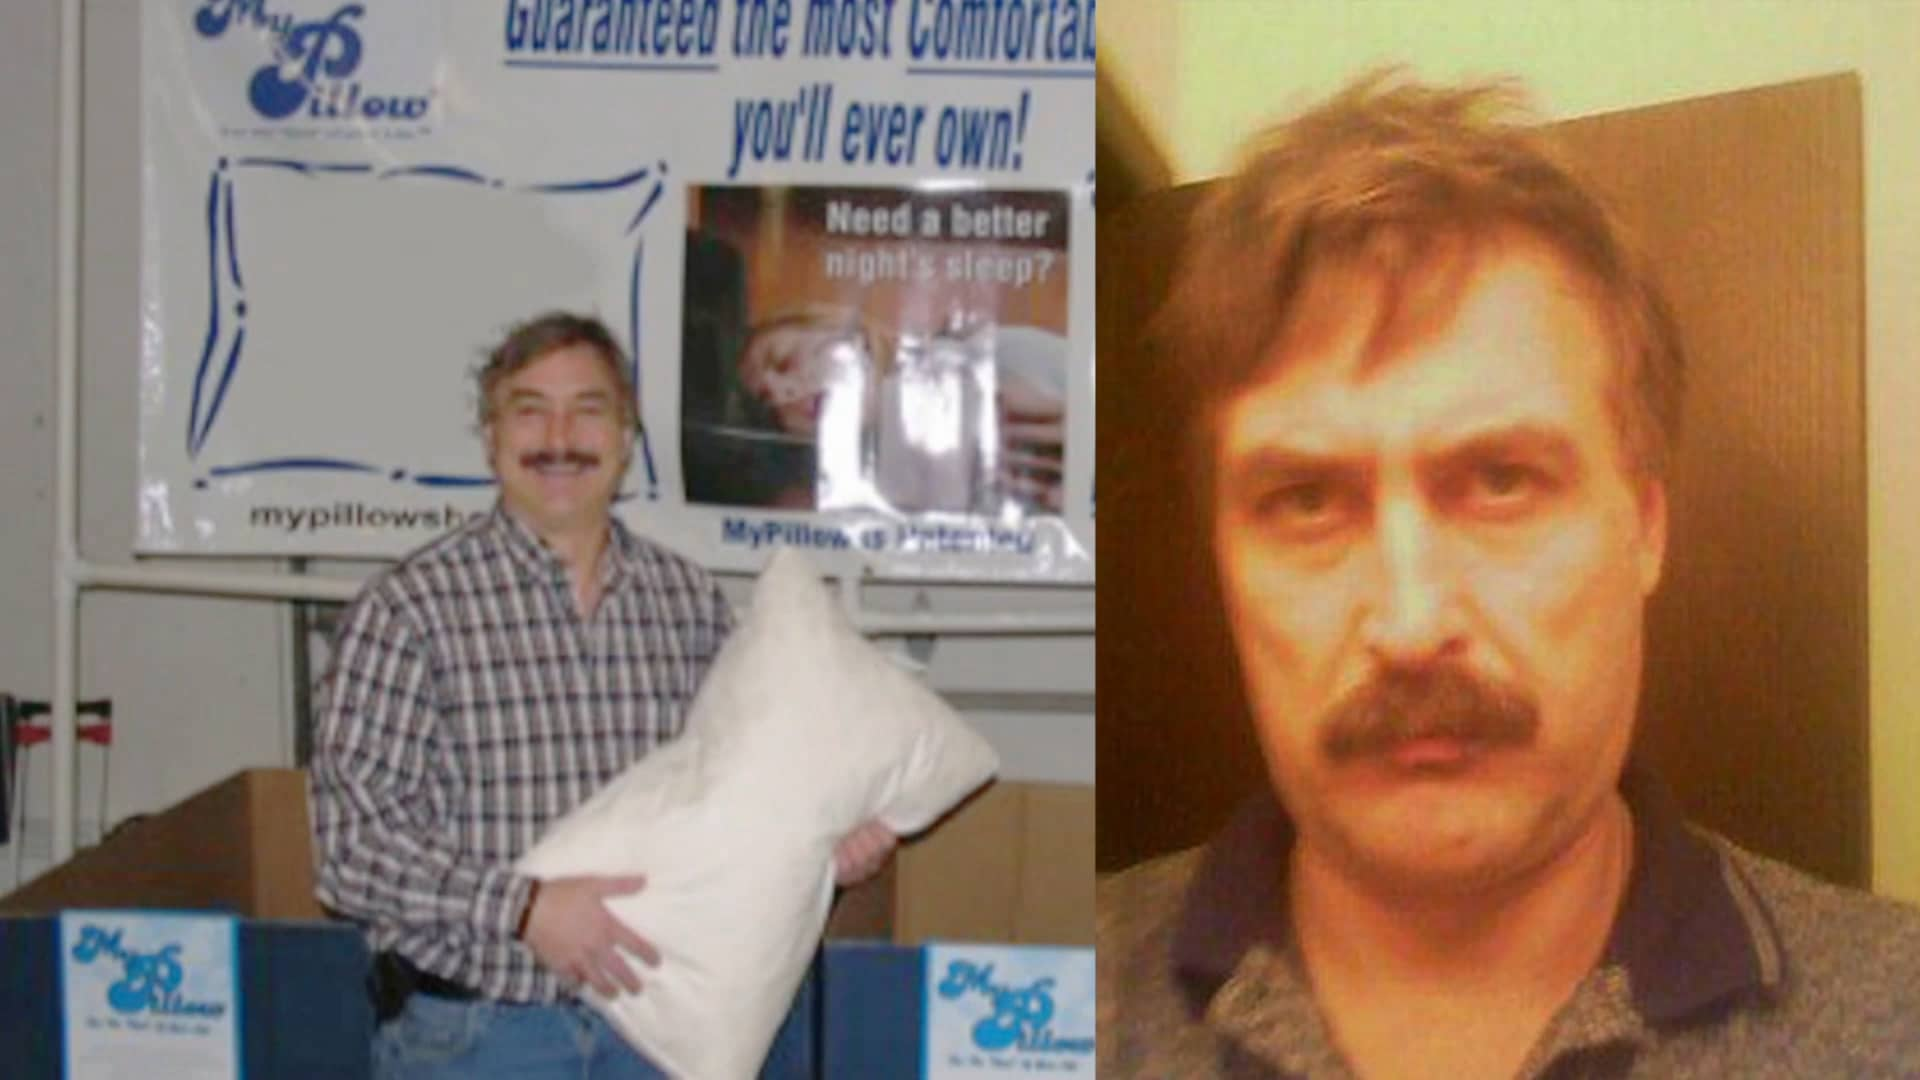 How MyPillow founder went from crack addict to self made millionaire